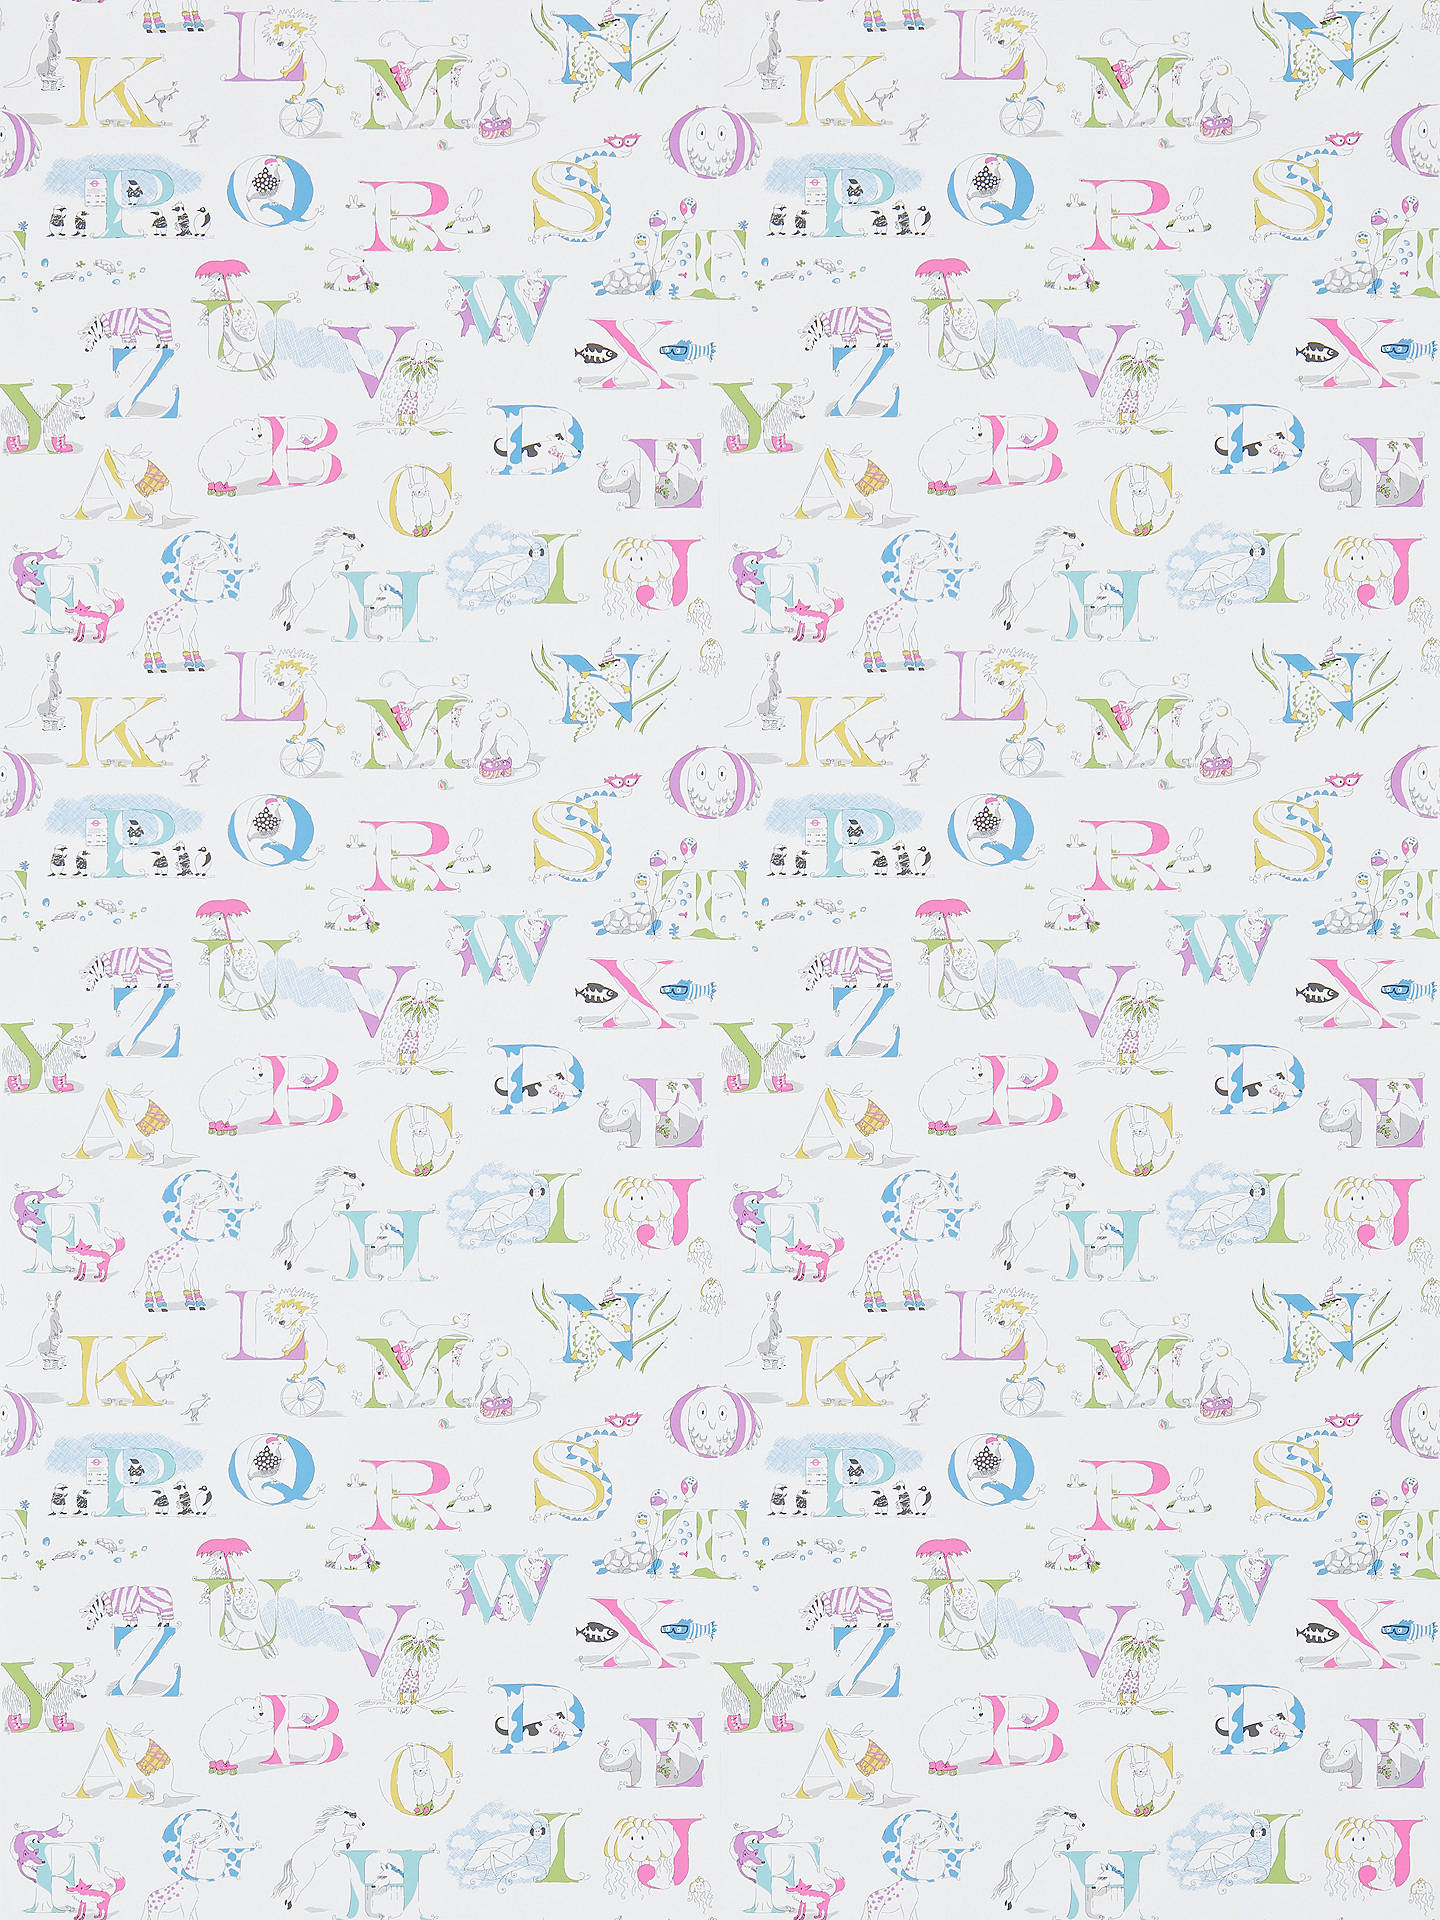 Buy Sanderson Alphabet Zoo Wallpaper, Neapolitan, DLIT214023 Online at johnlewis.com